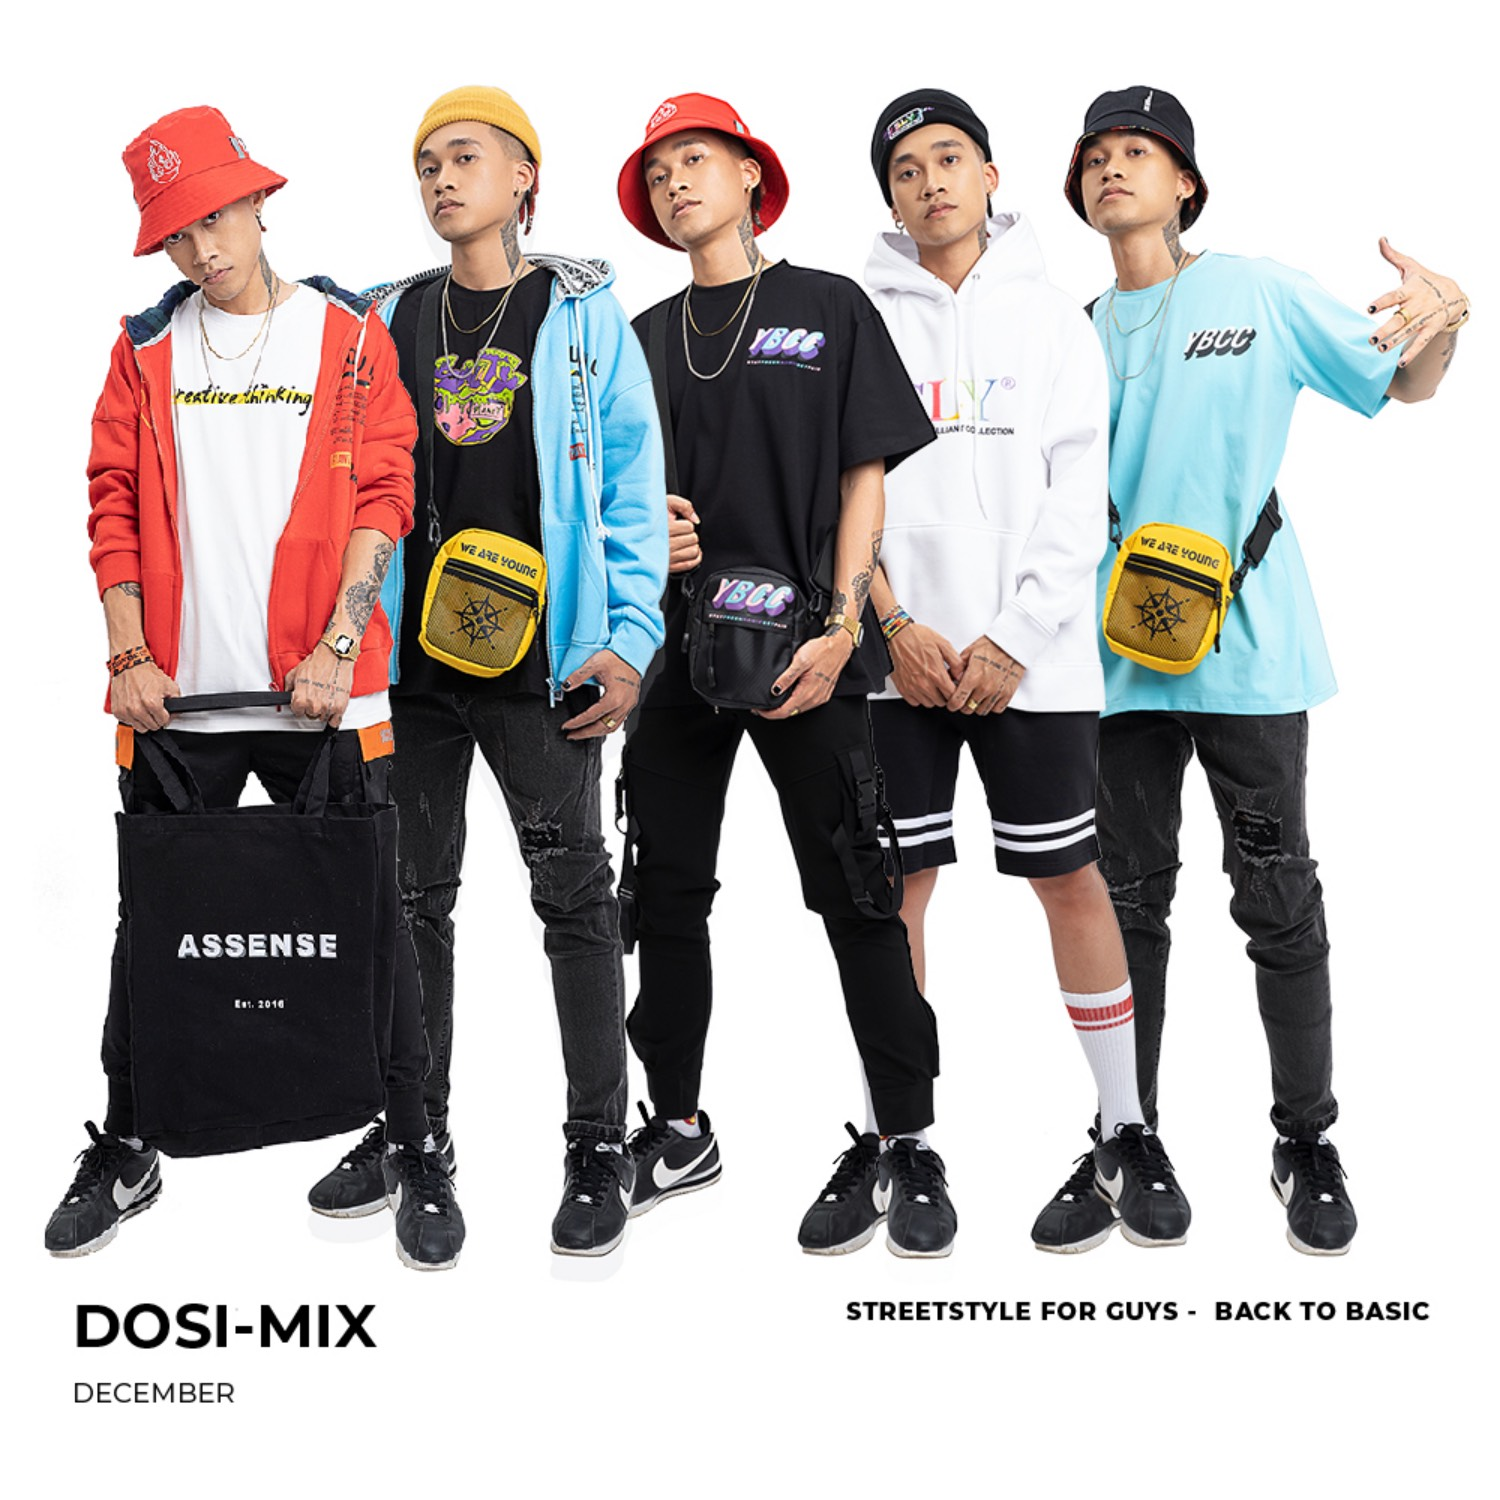 DOSI-MIX - DECEMBER #1 STREET STYLE FOR GUYS - BACK TO BASIC